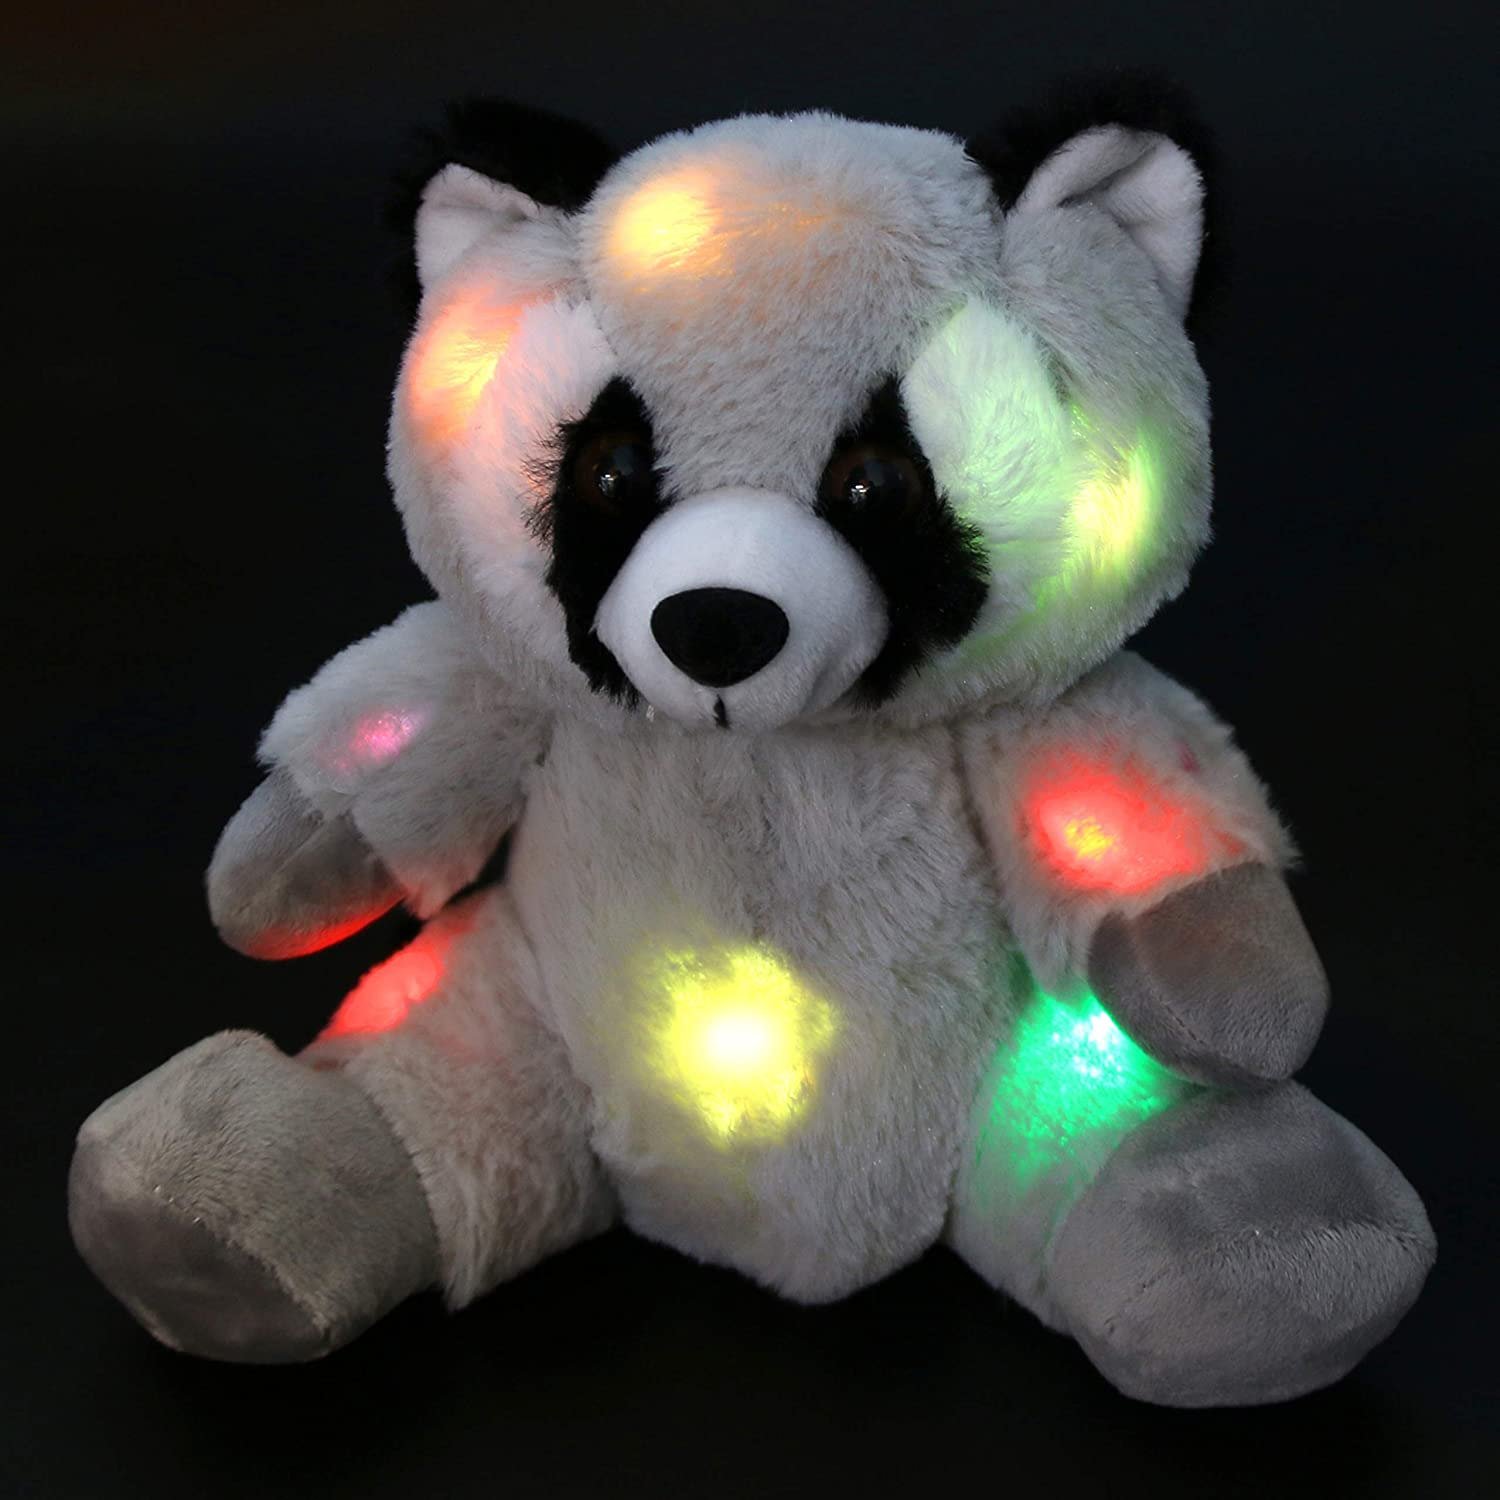 Bstaofy LED Raccoon Stuffed Animal Glow Soft Plush Toy Light up Colorful Companion for Kids, 10'' (Style 1)